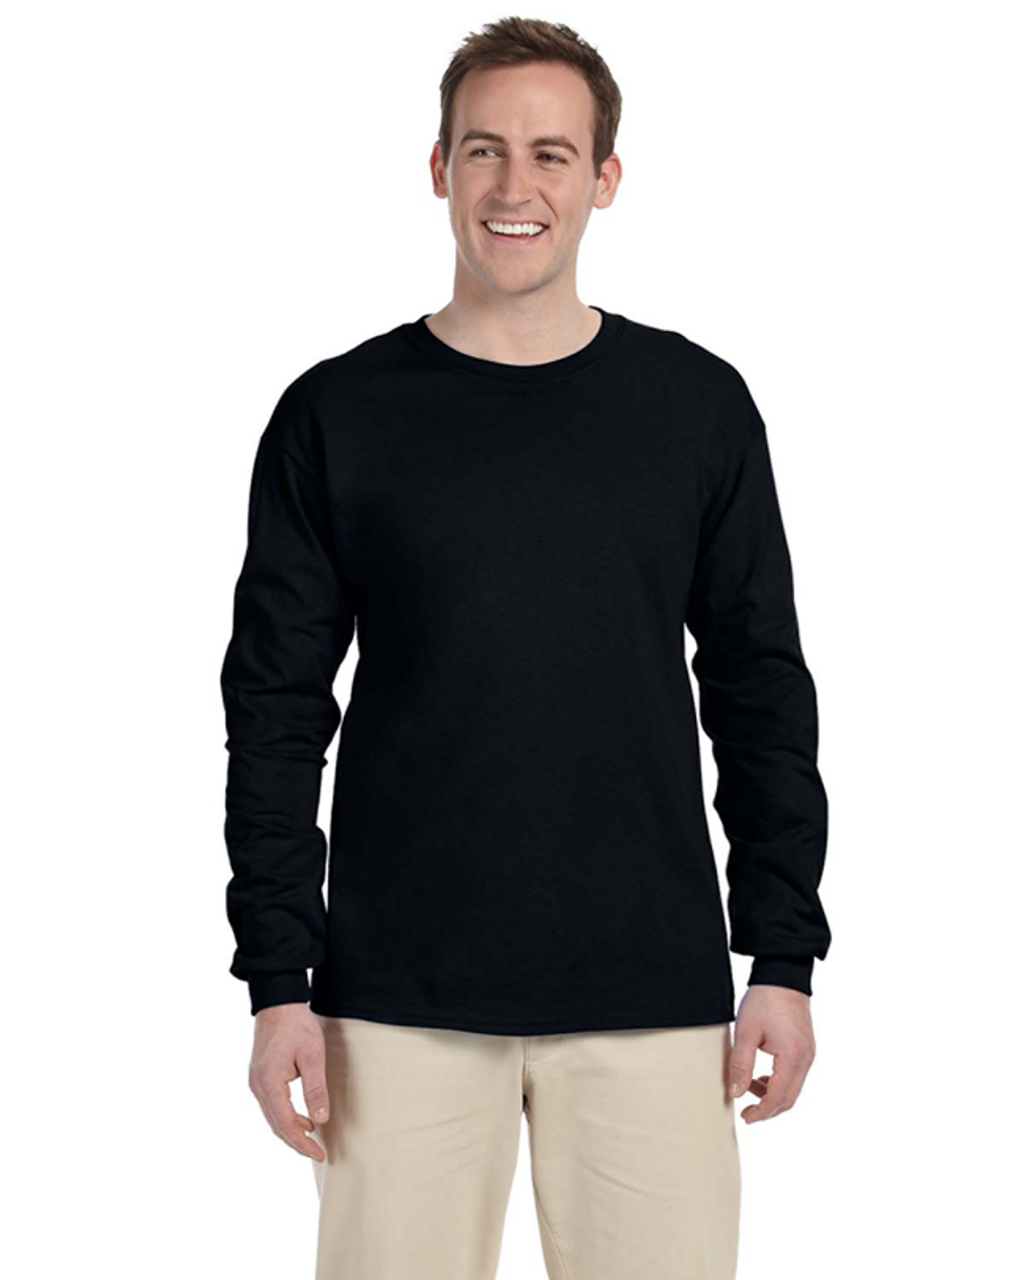 Black - 4930 Fruit of the Loom 100% Heavy Cotton HD® Long-Sleeve T-Shirt | Blankclothing.ca